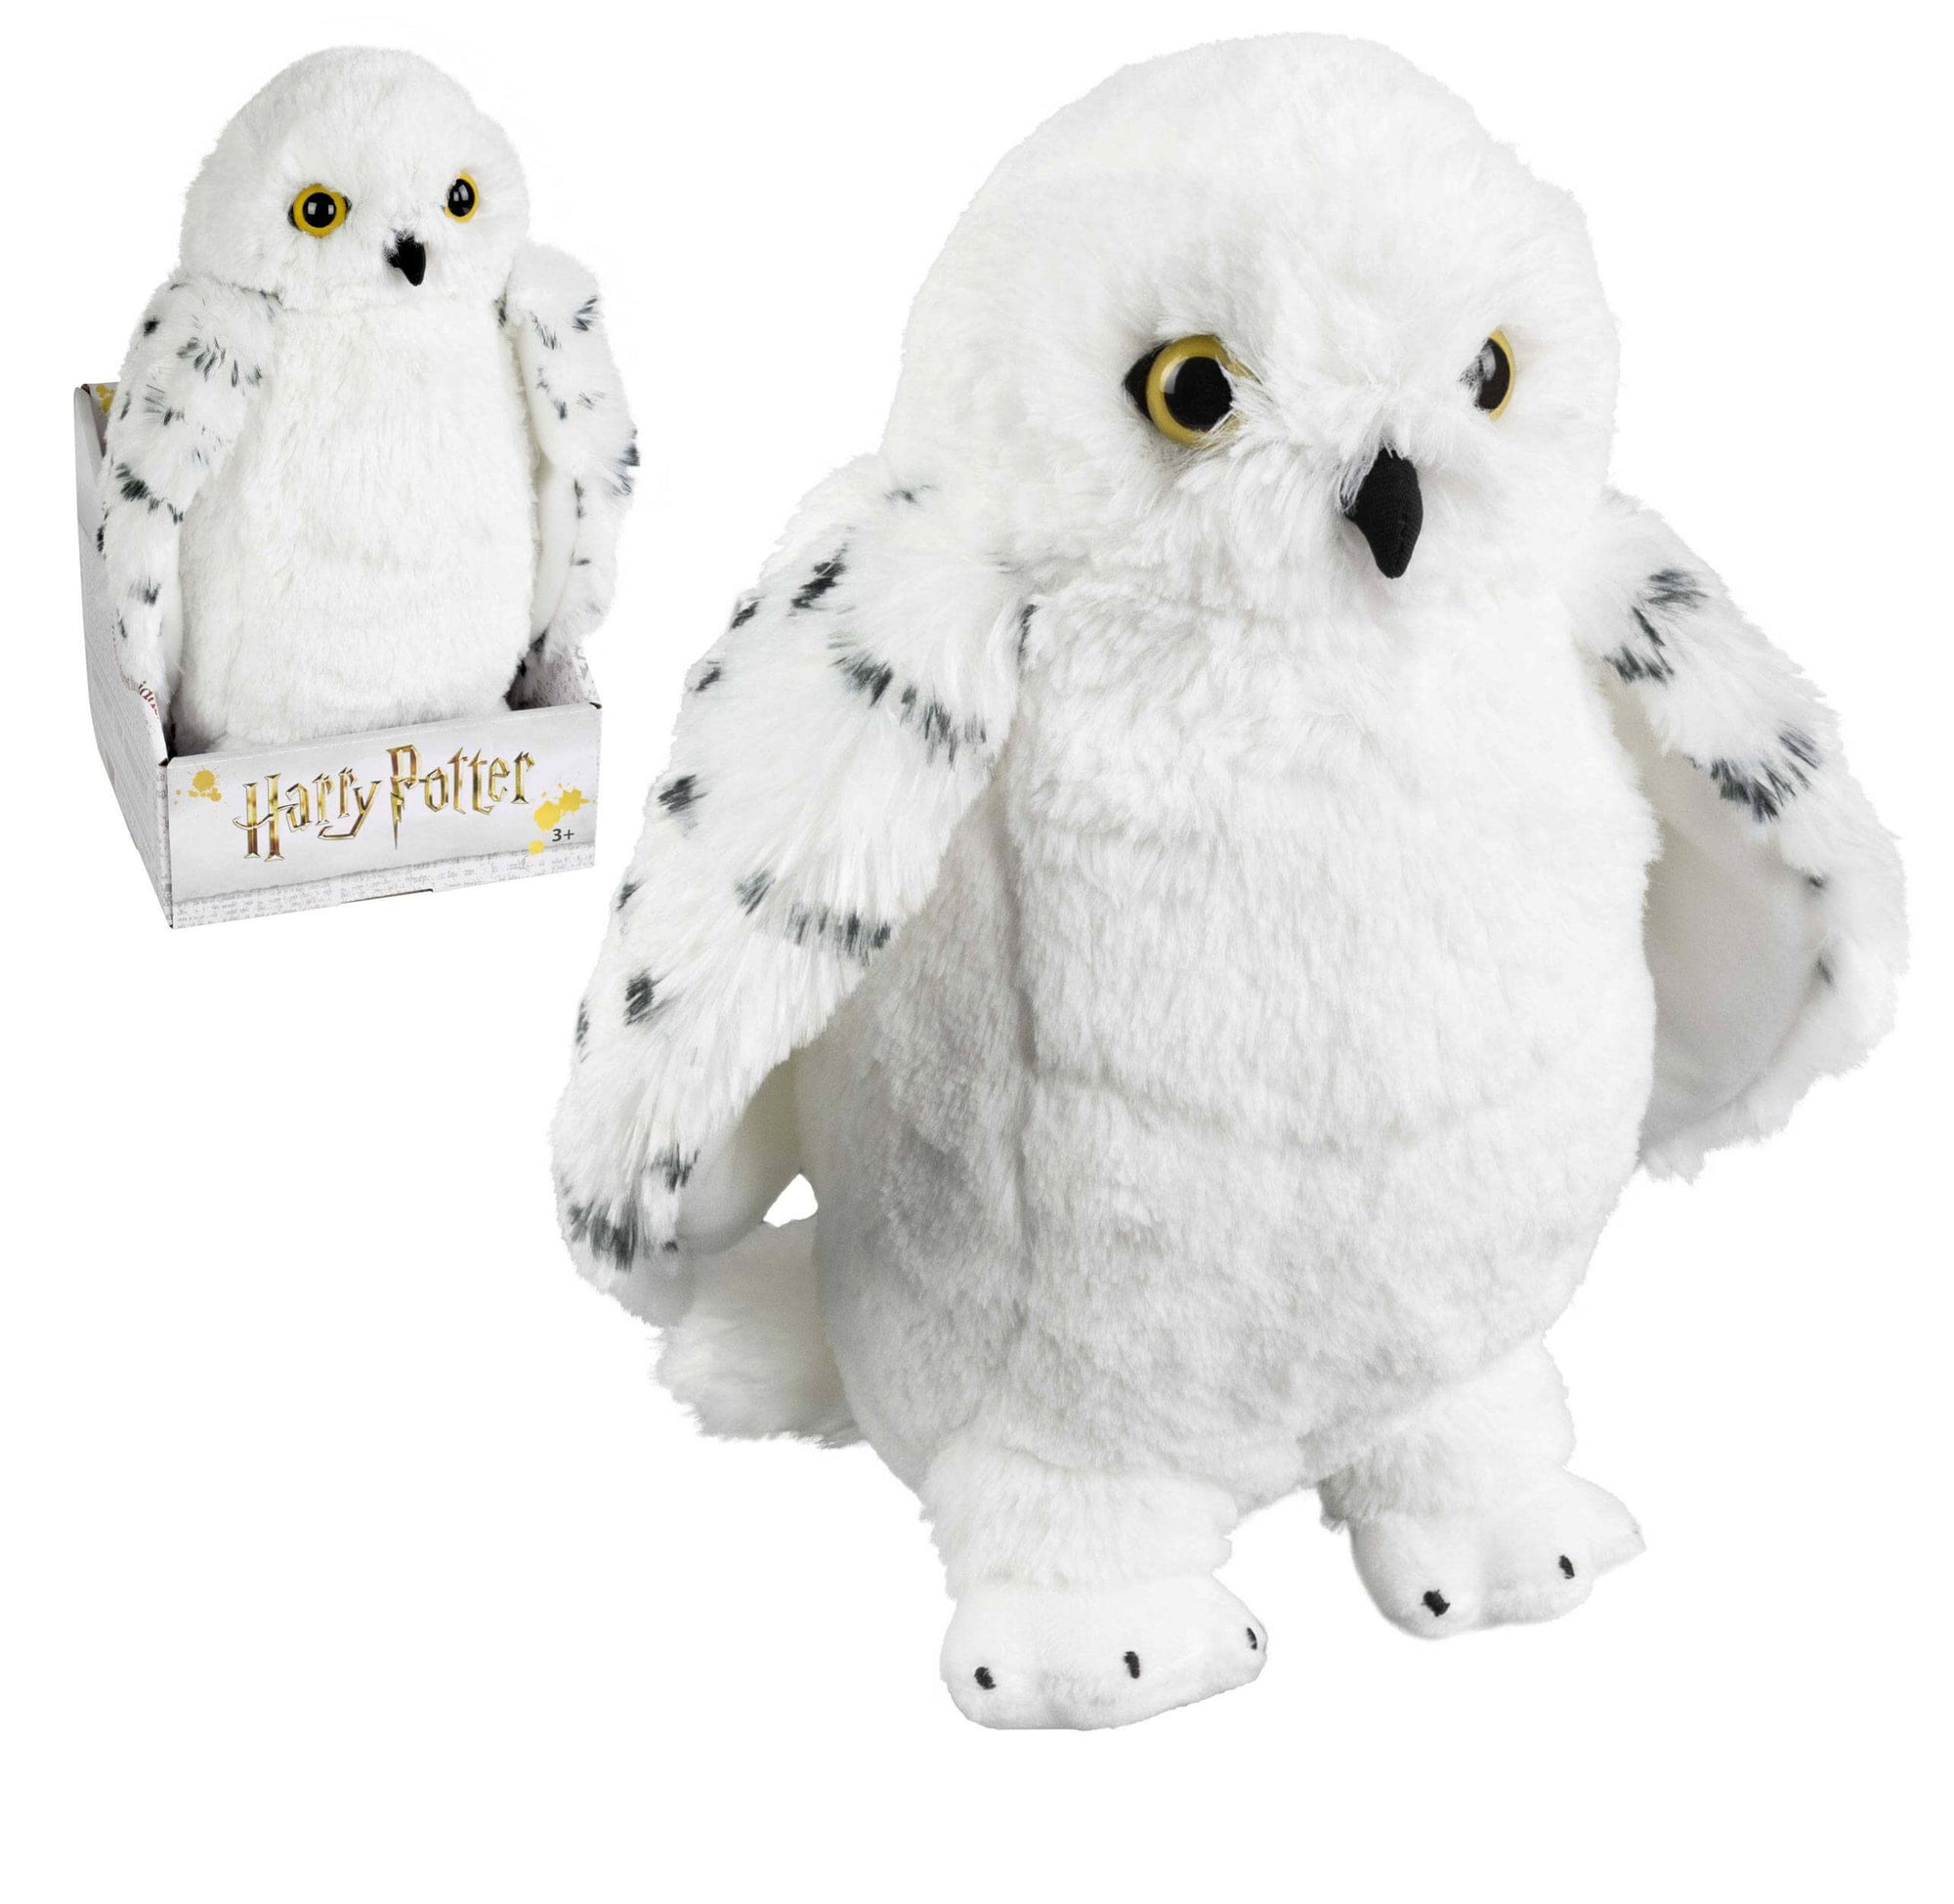 PELUCHE HEDWIGE 29cm - HARRY POTTER - la boutique du sorcier